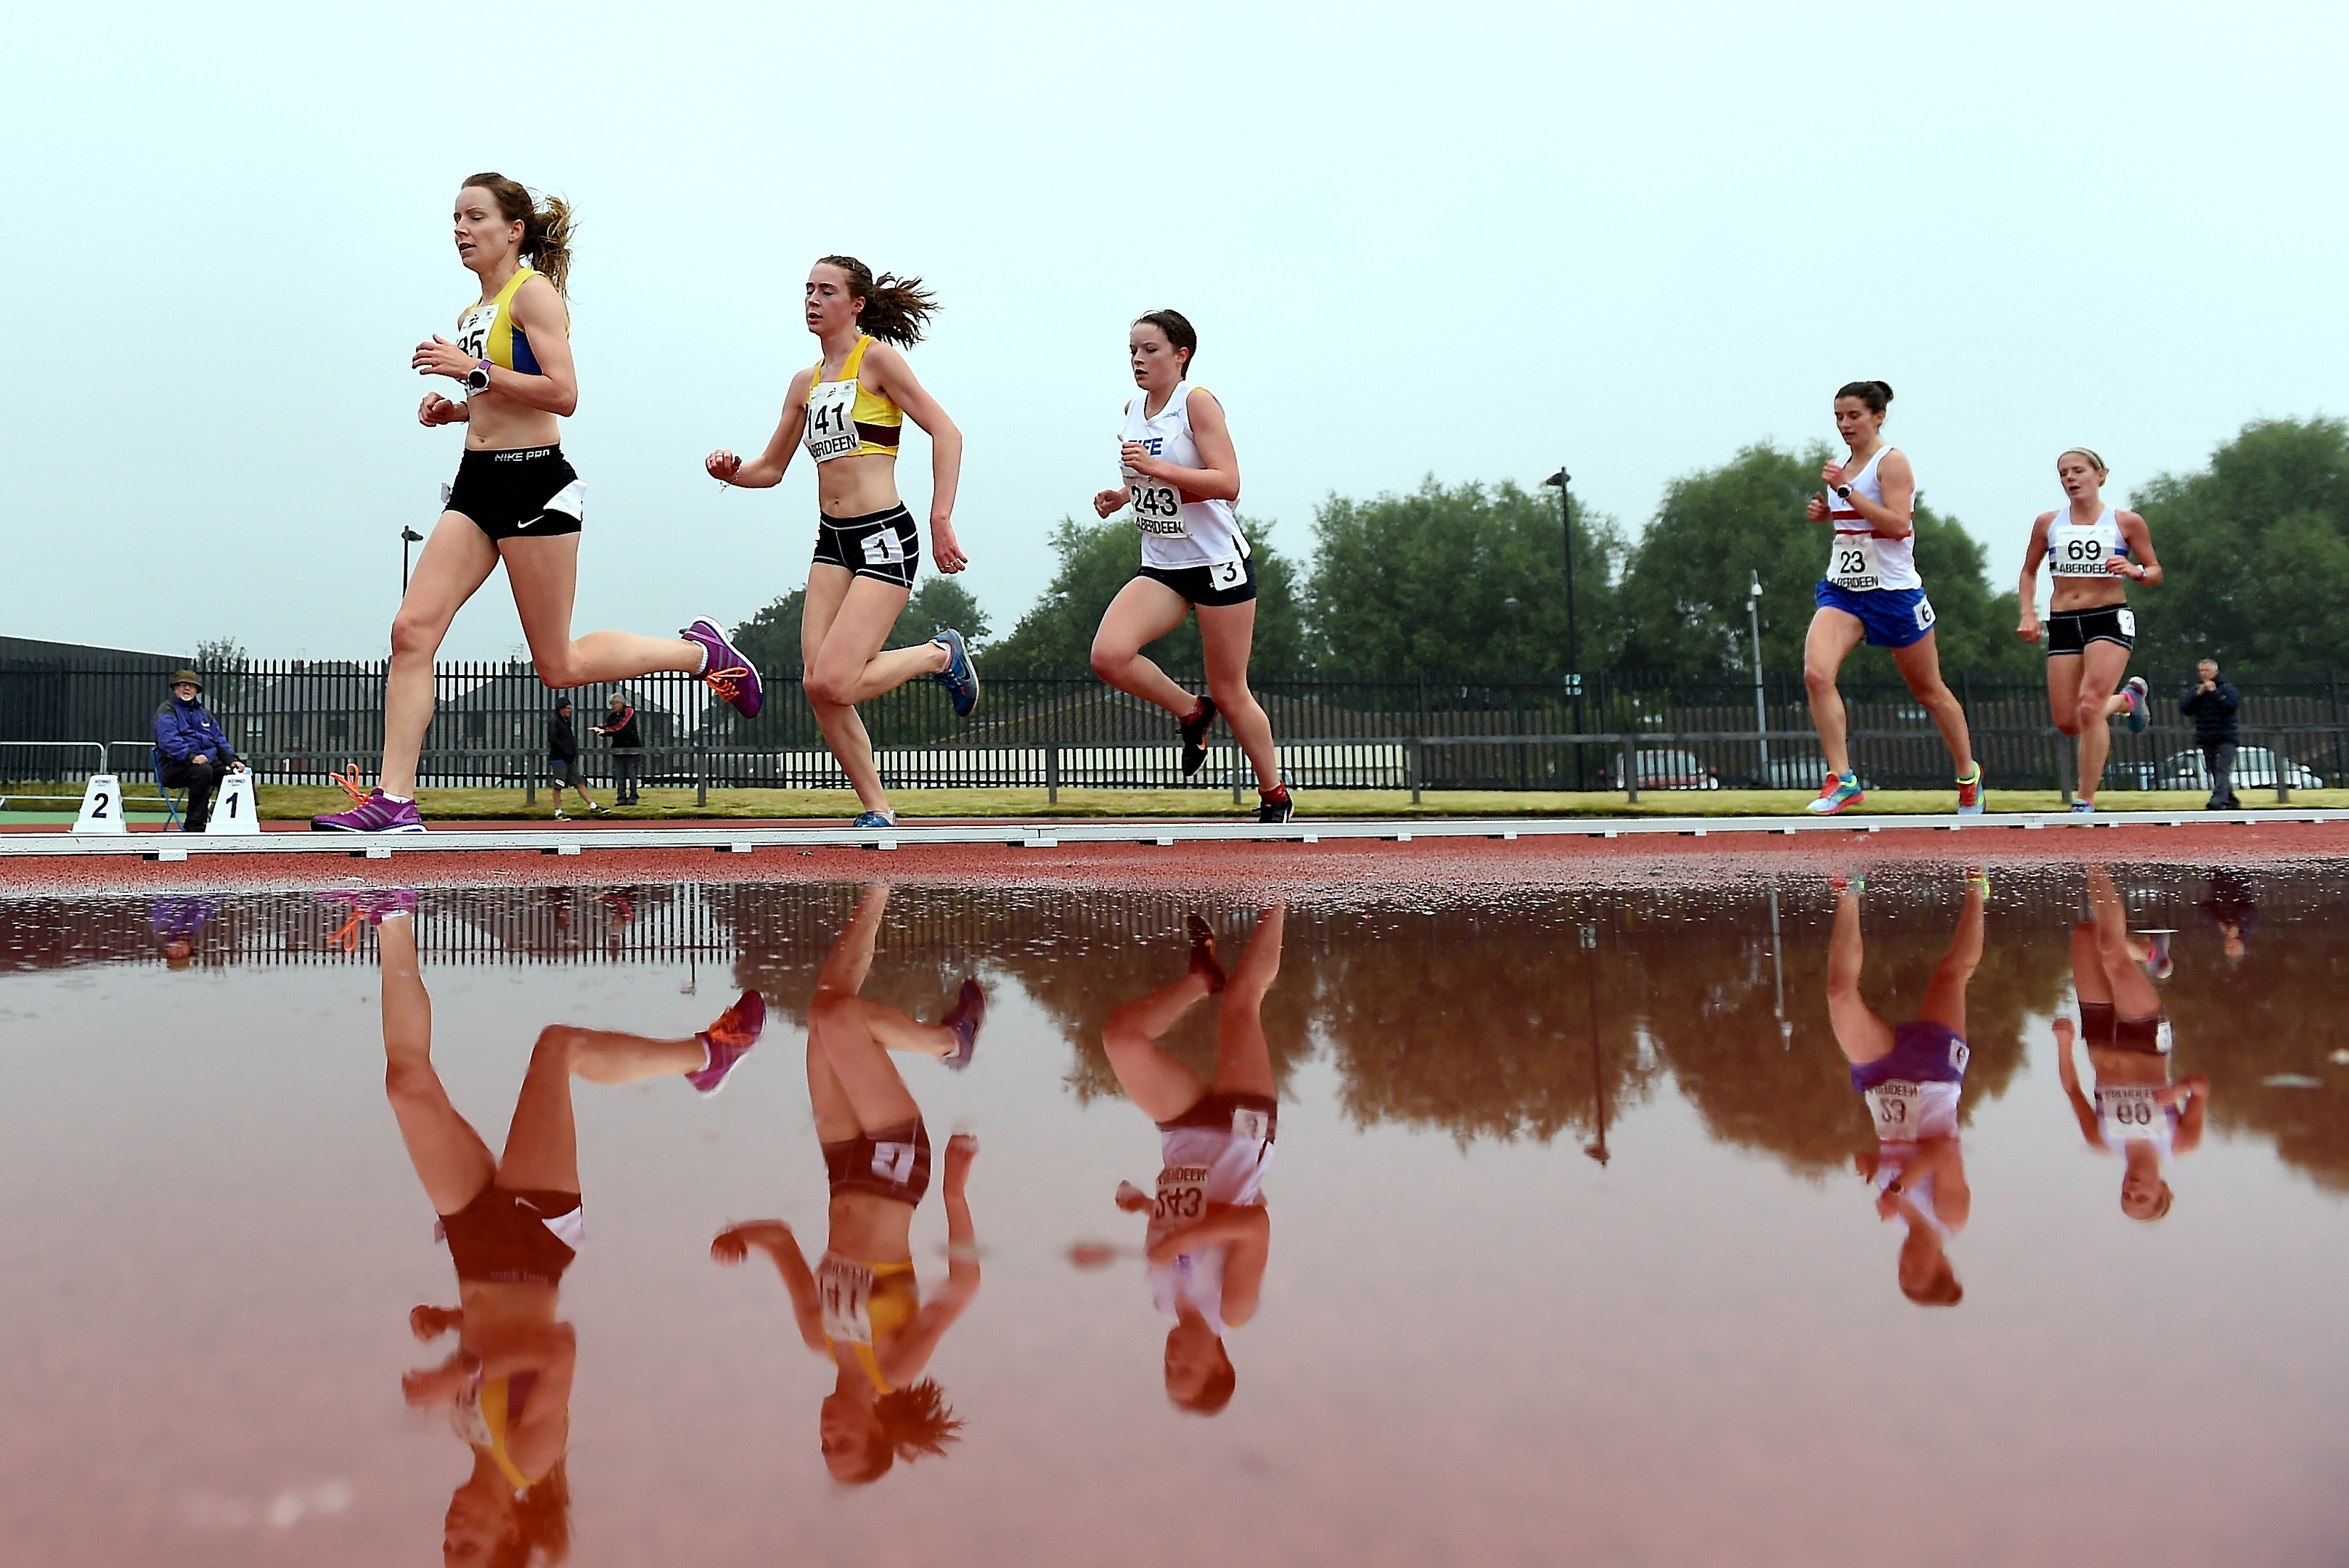 Scottish Athletics National Senior Championships and Parallel Success - No 141 Mhairi Maclennan and 23 Ellie Buchan compete in the woman's 5000m at Aberdeen Sports Village.  Picture by KEVIN EMSLIE